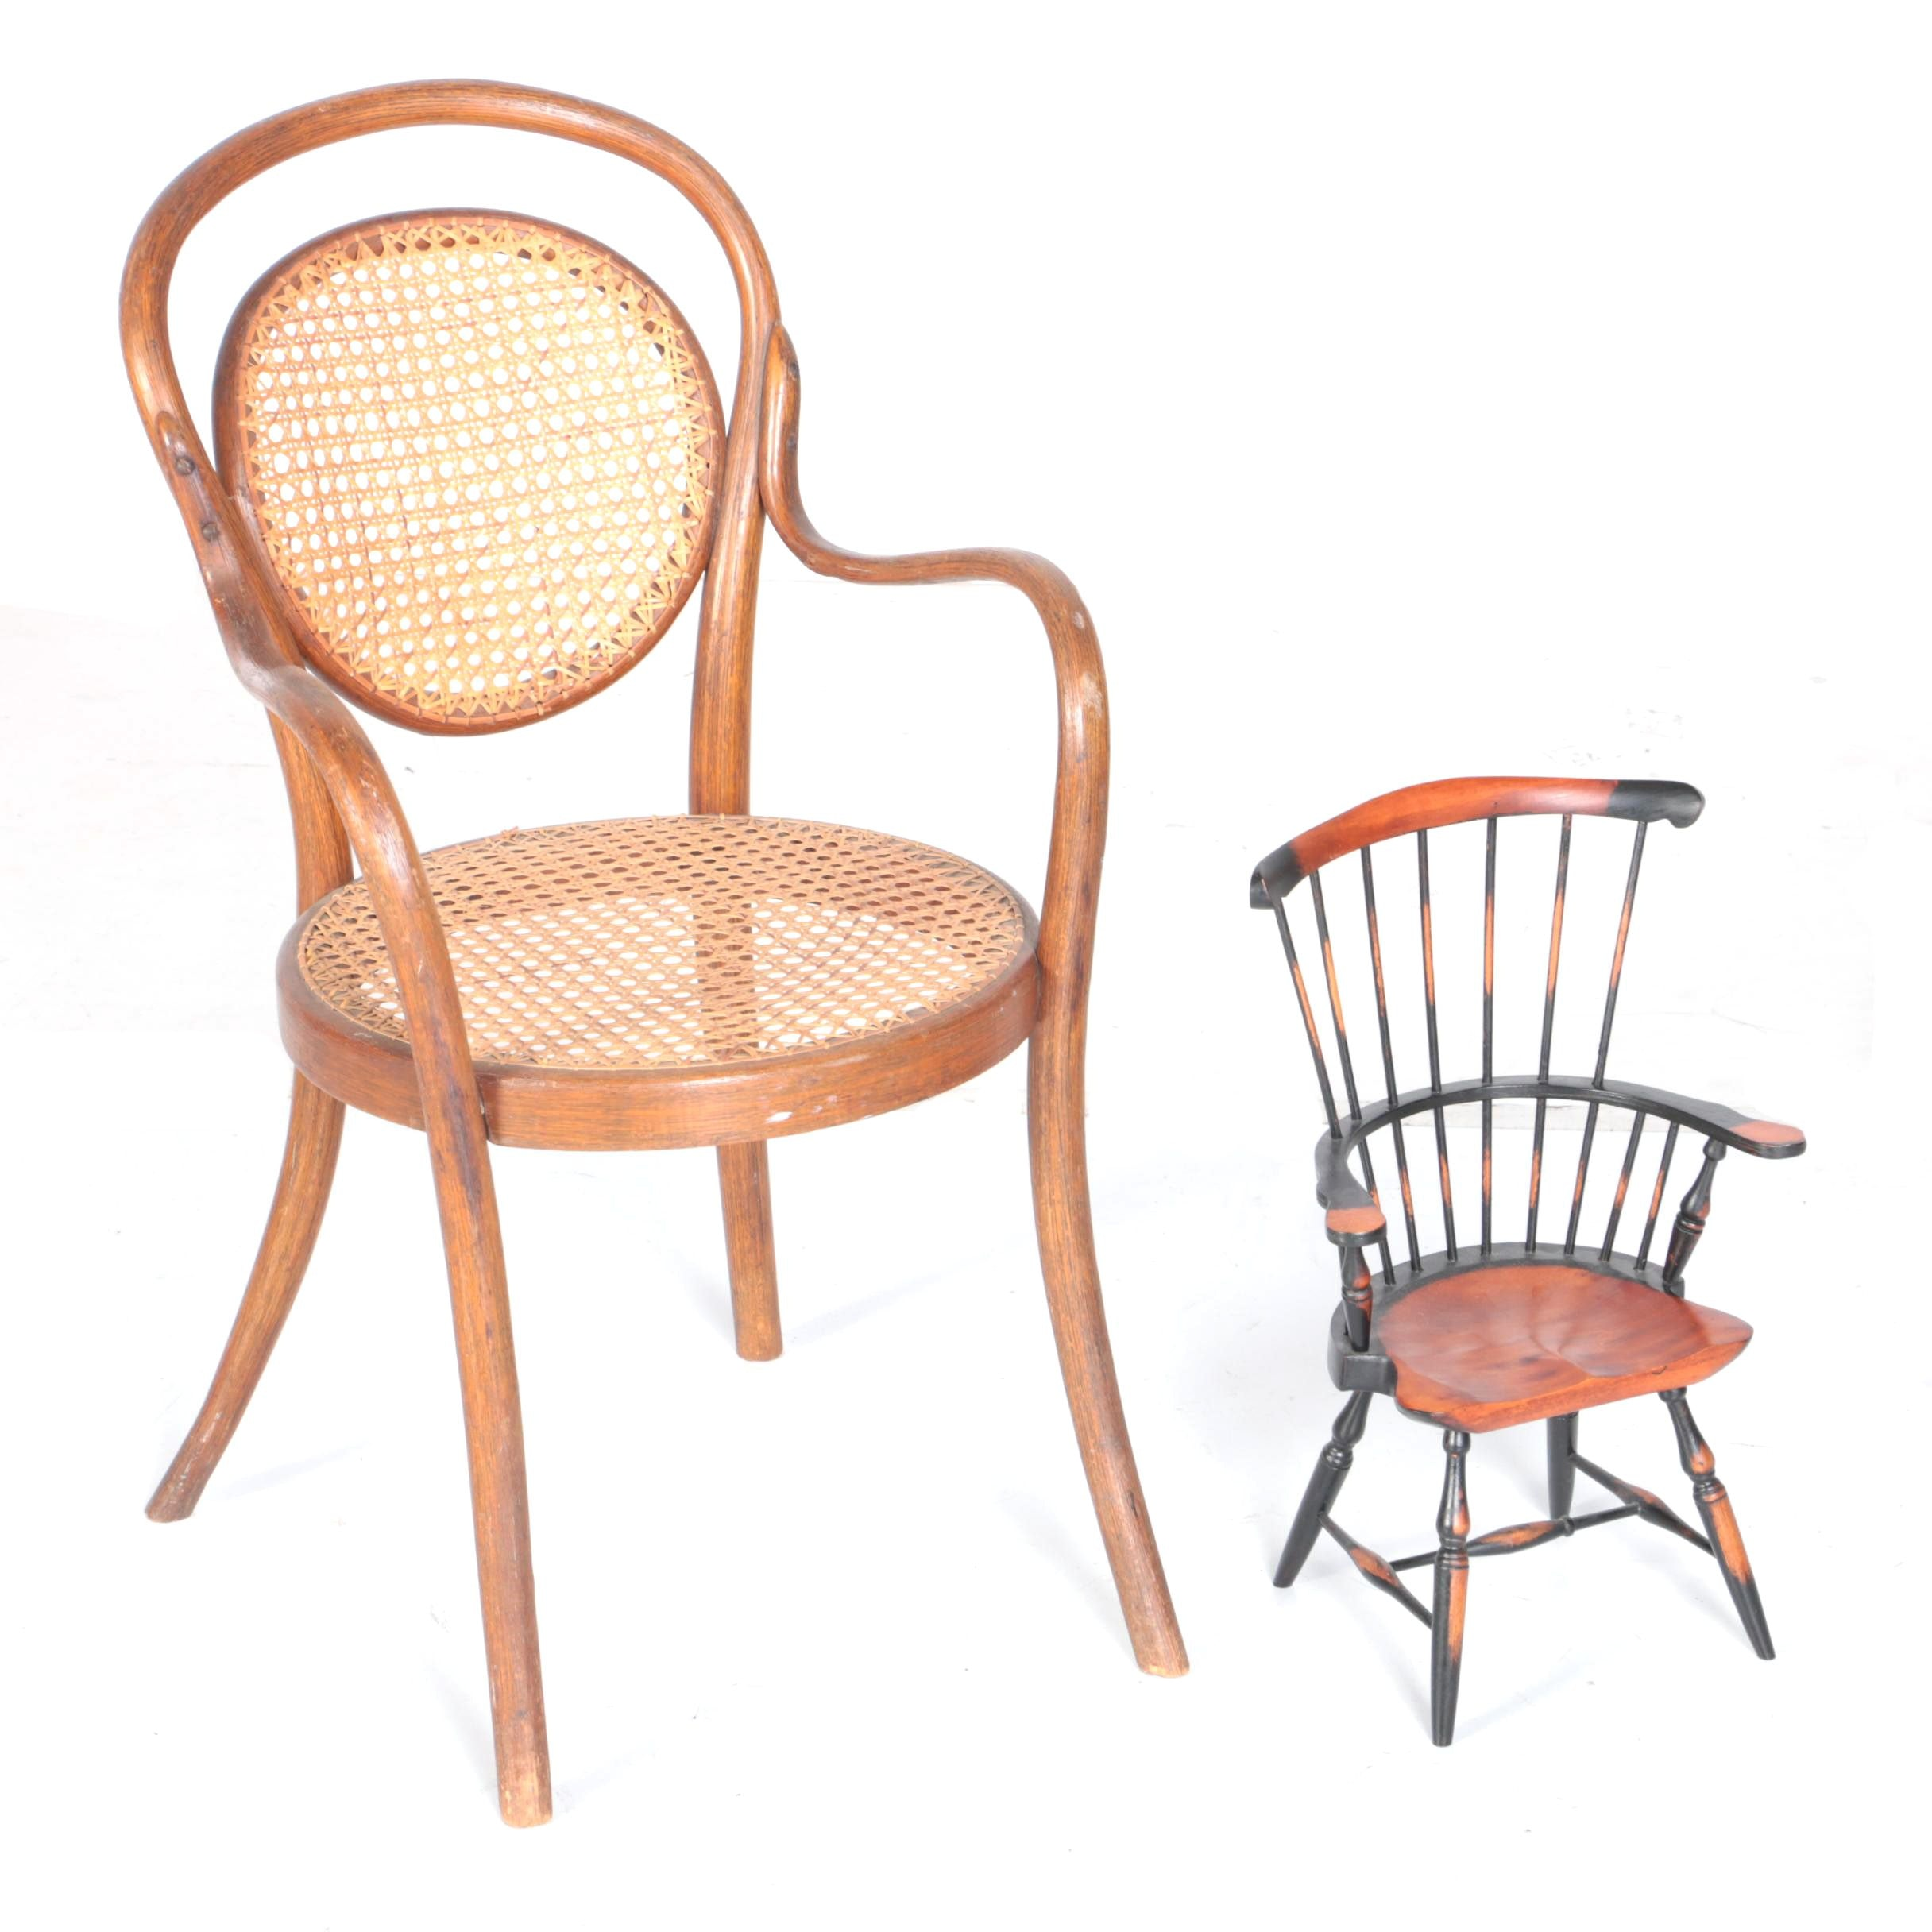 Vintage Caned Bentwood Armchair and Diminutive Windsor Style Armchair